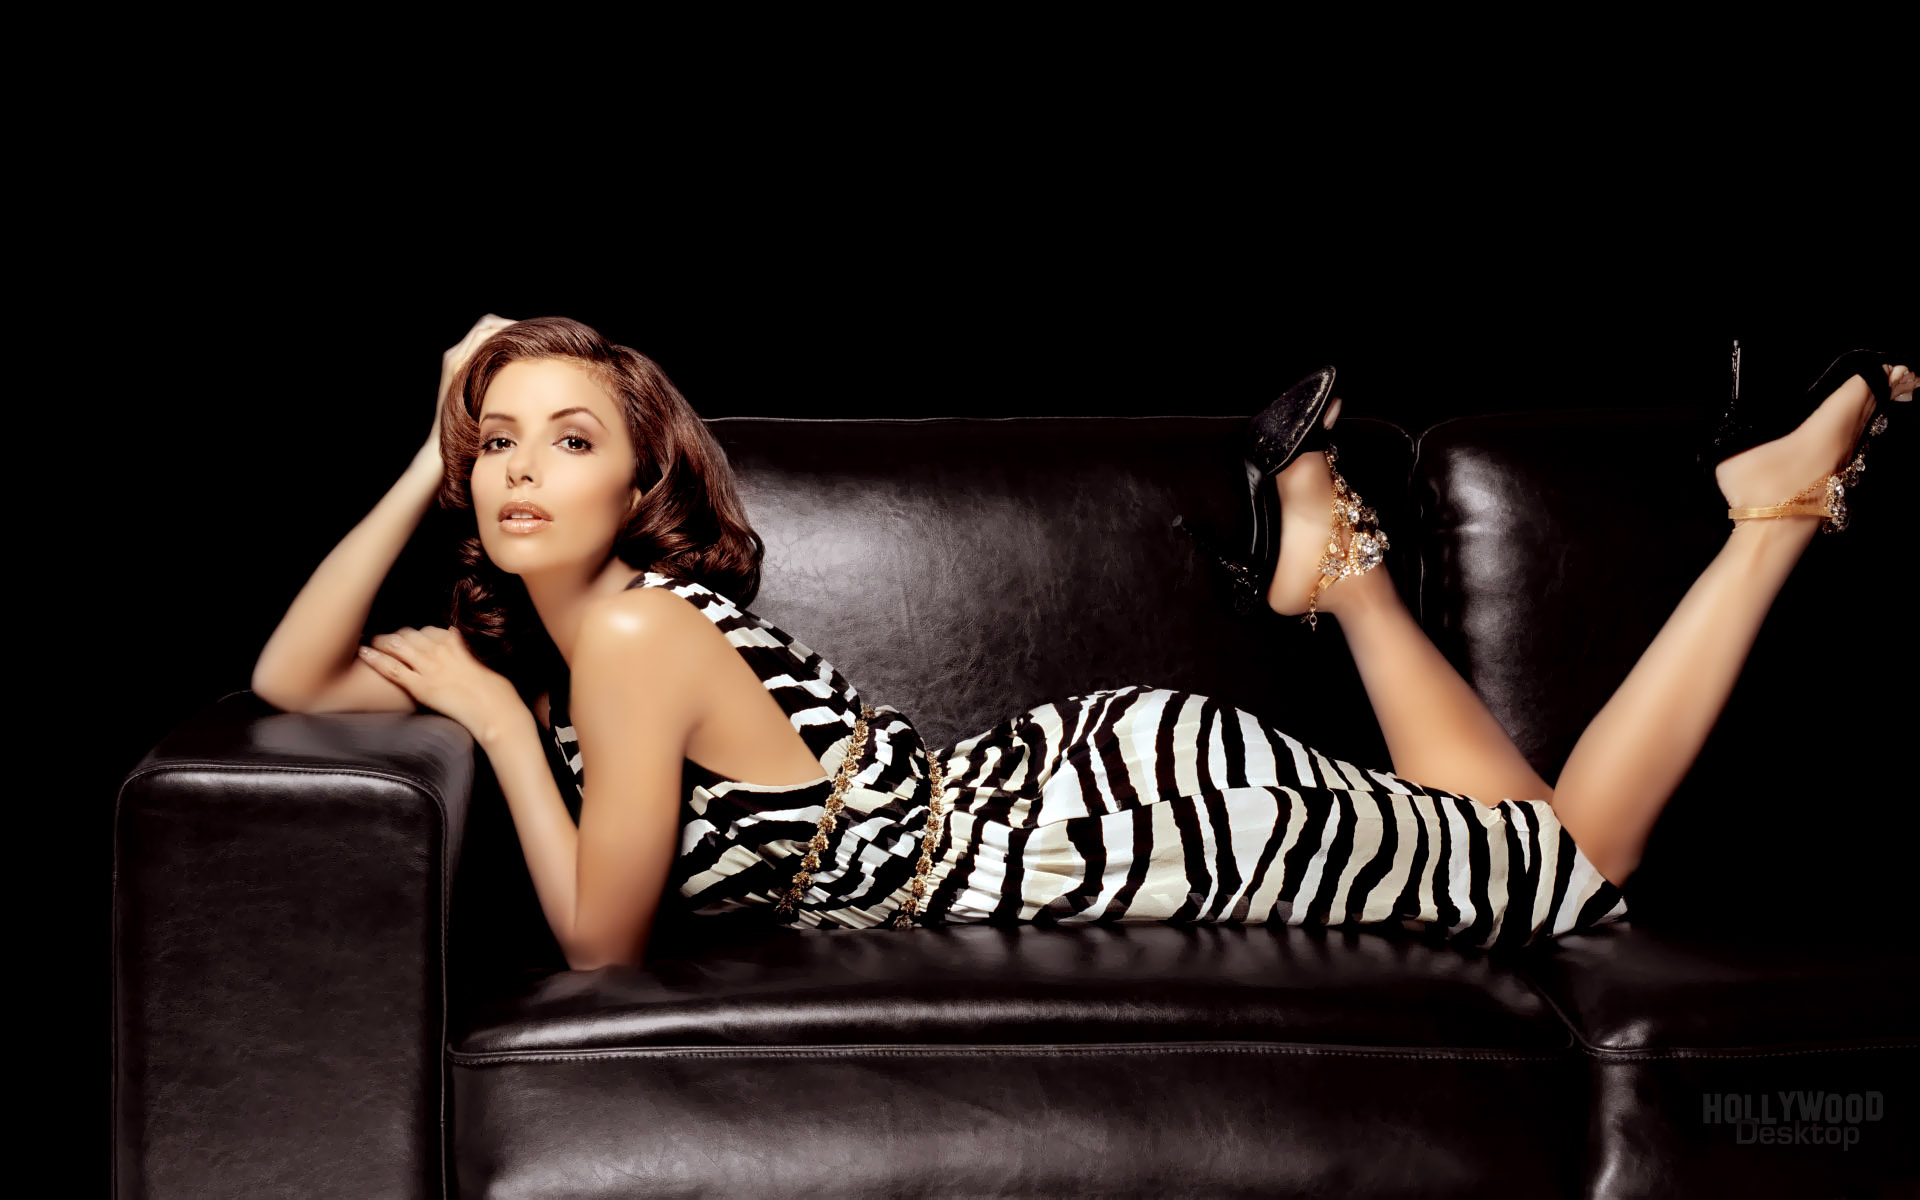 Eva Longoria Wallpaper 10146